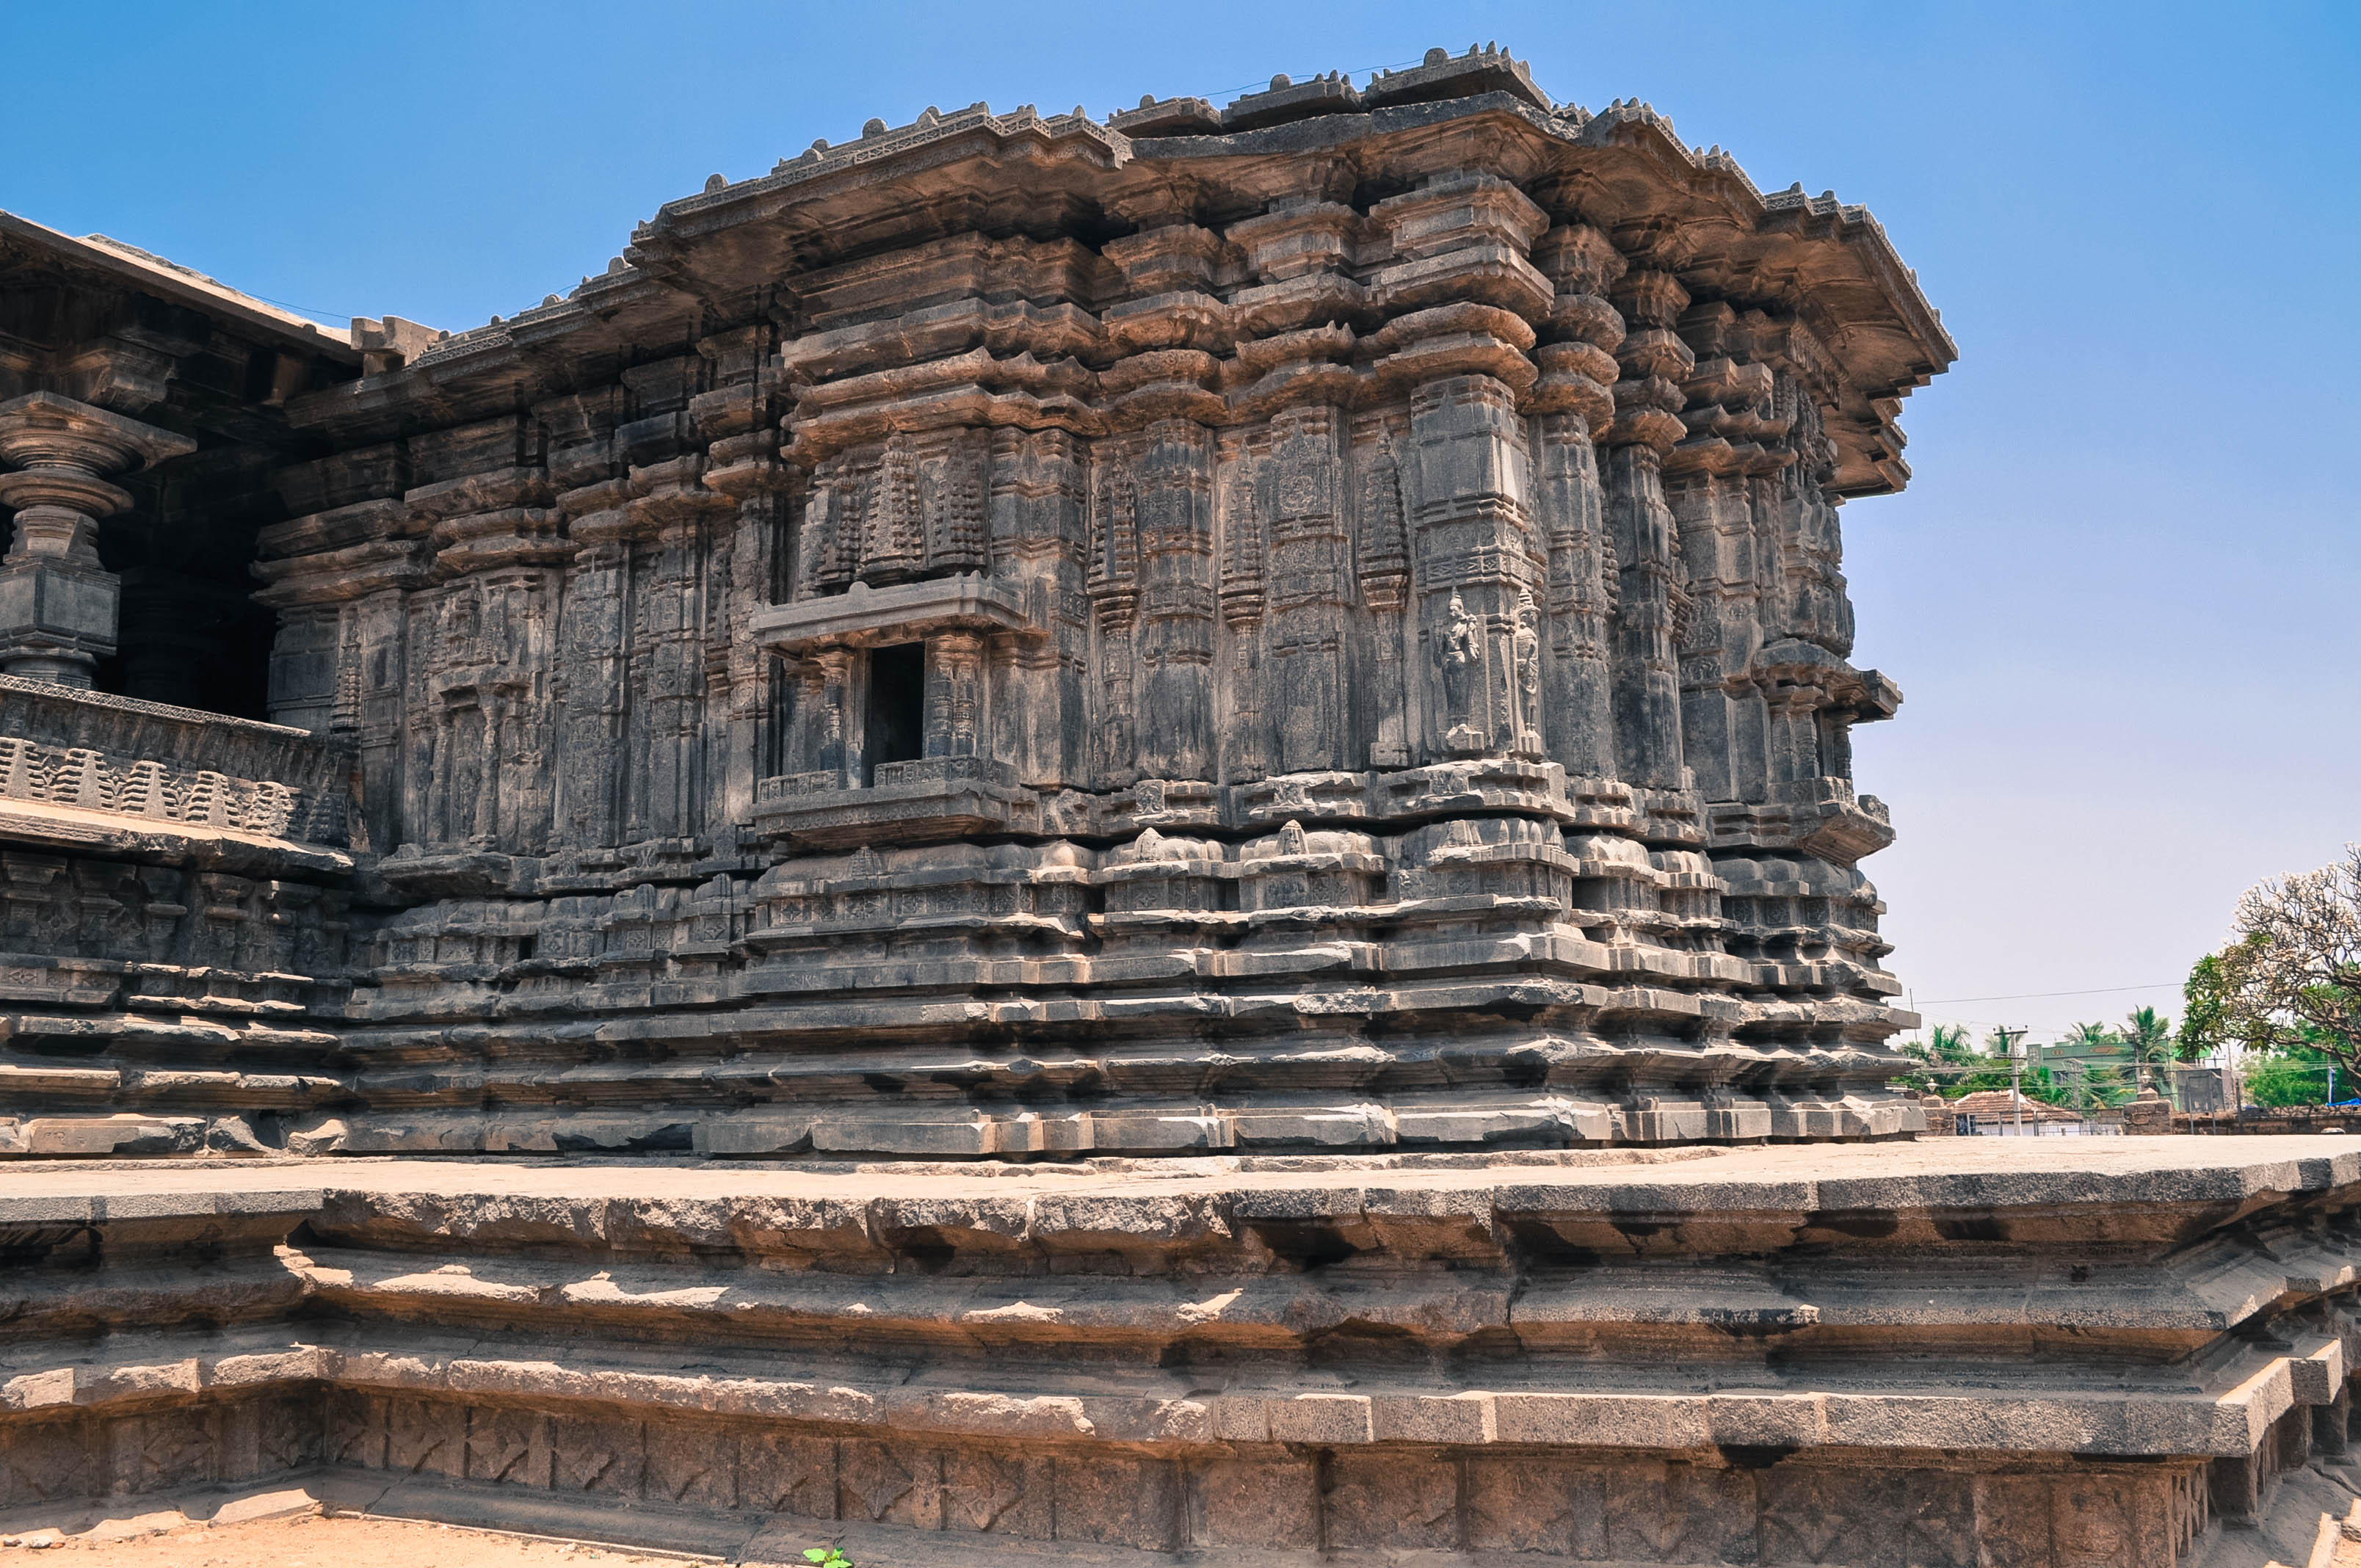 Thousand pillars temple at warangal lord shiva ganesh side view of thousand pillar temple waranga biocorpaavc Gallery